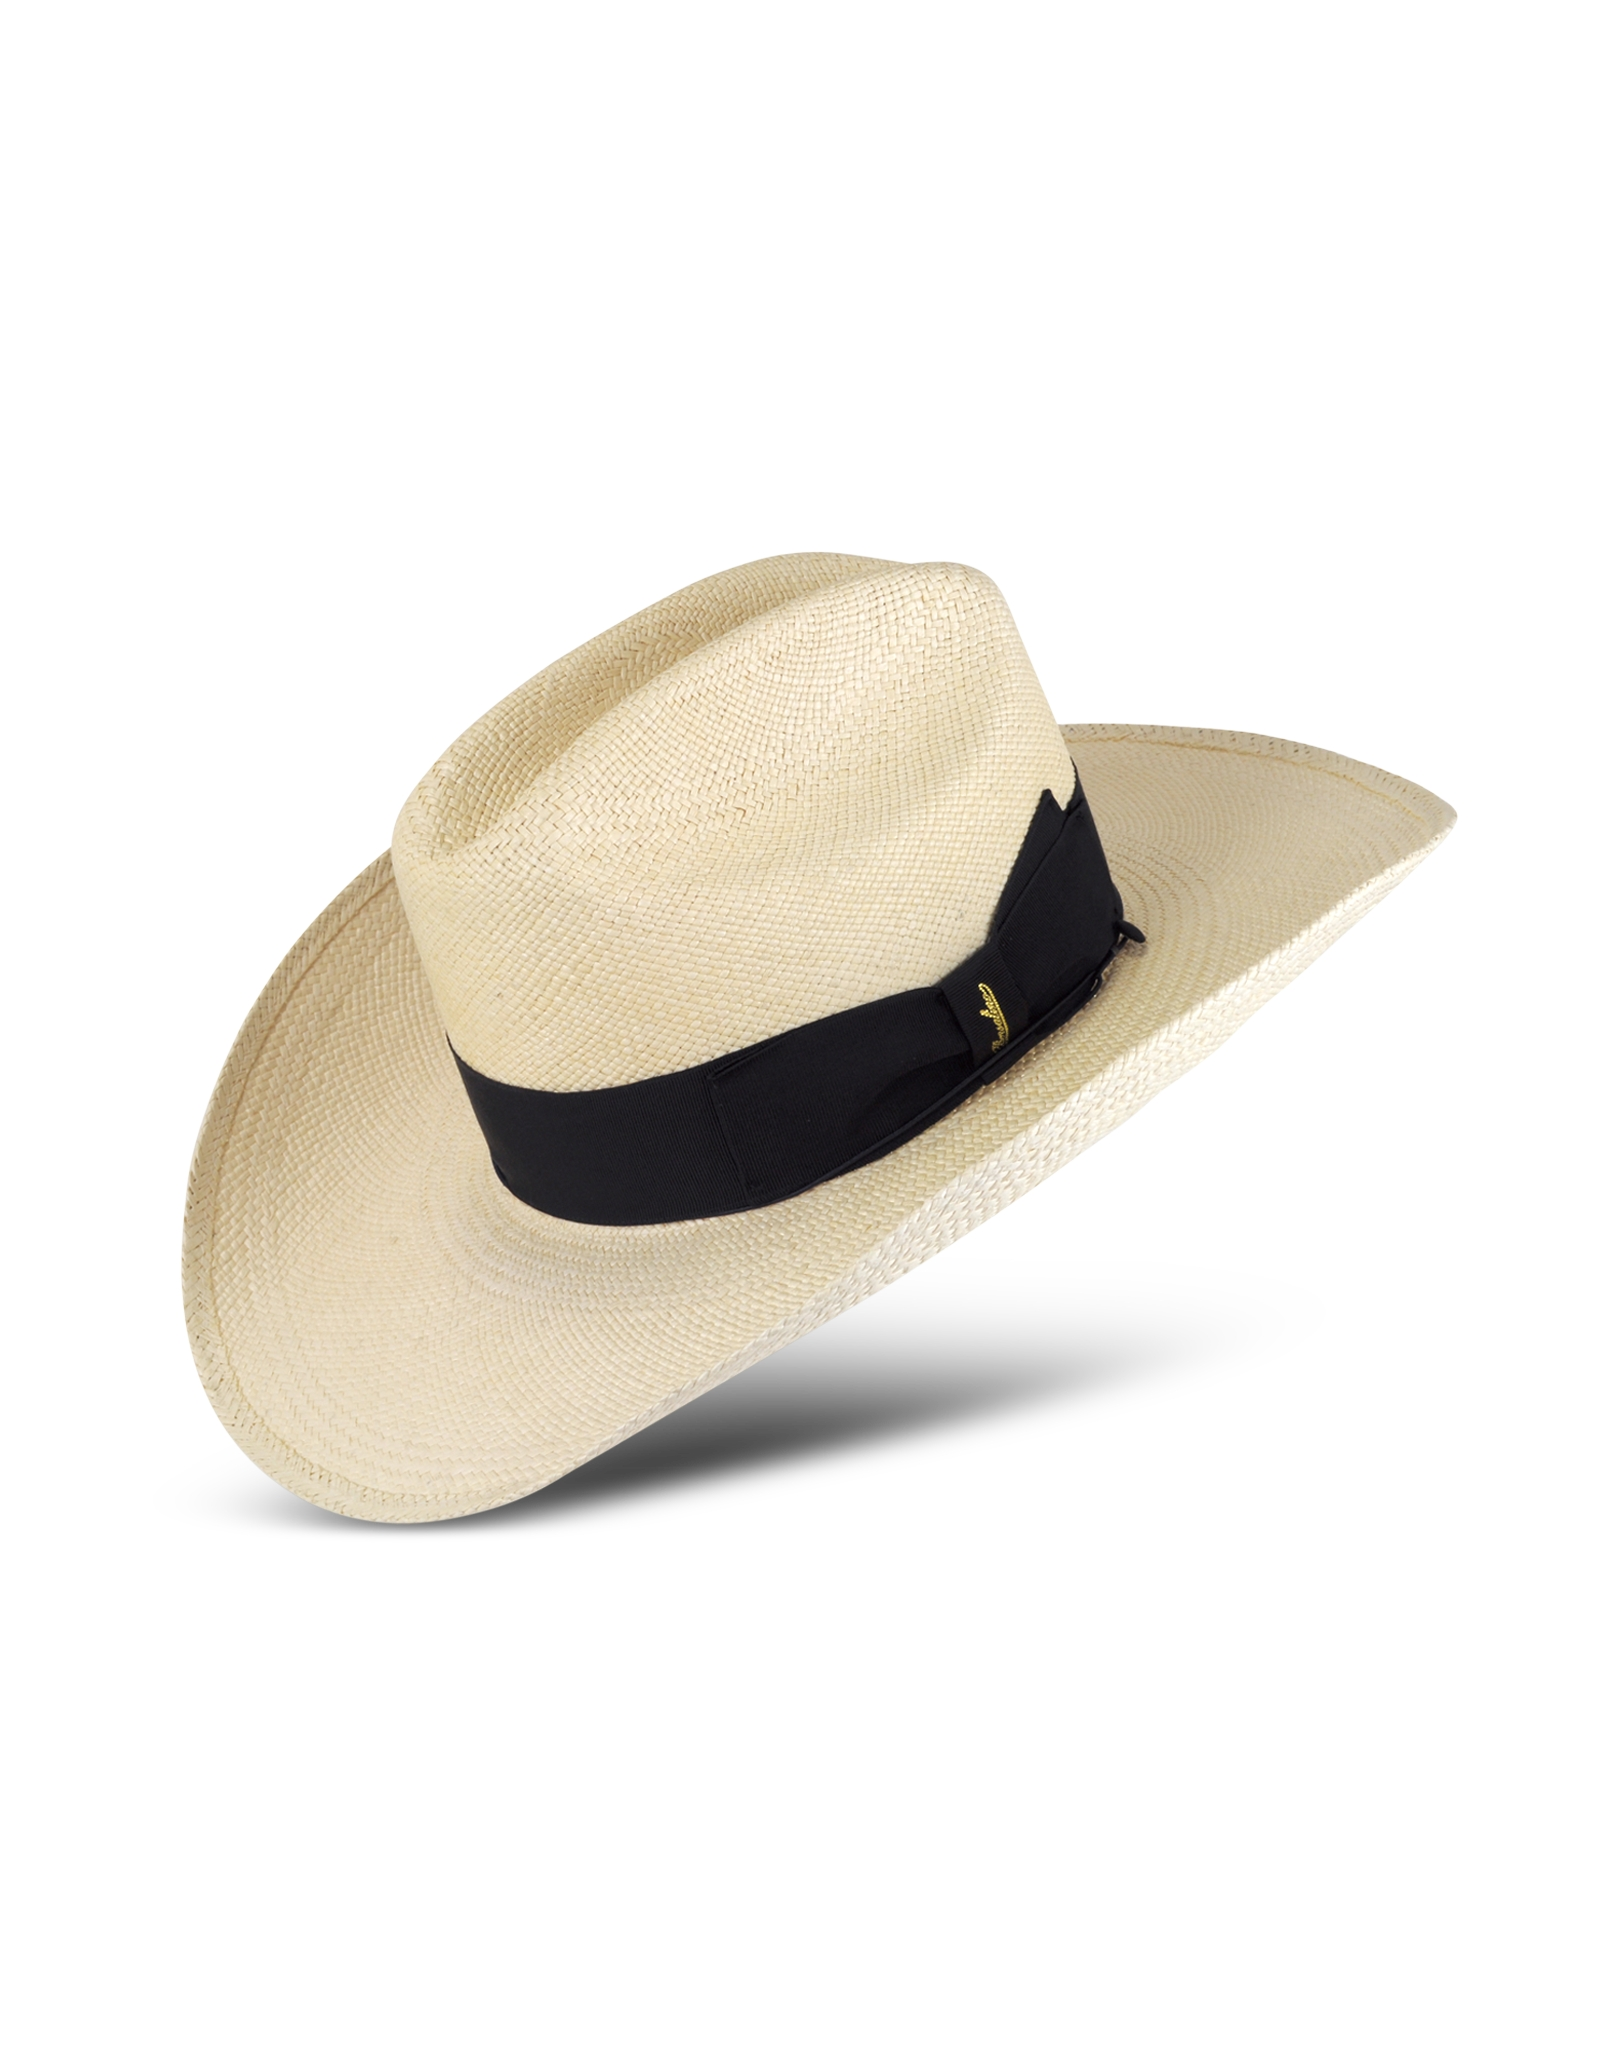 32ee1ebe17663 Borsalino Panama Cowboy Hat With Black Band in White for Men - Lyst